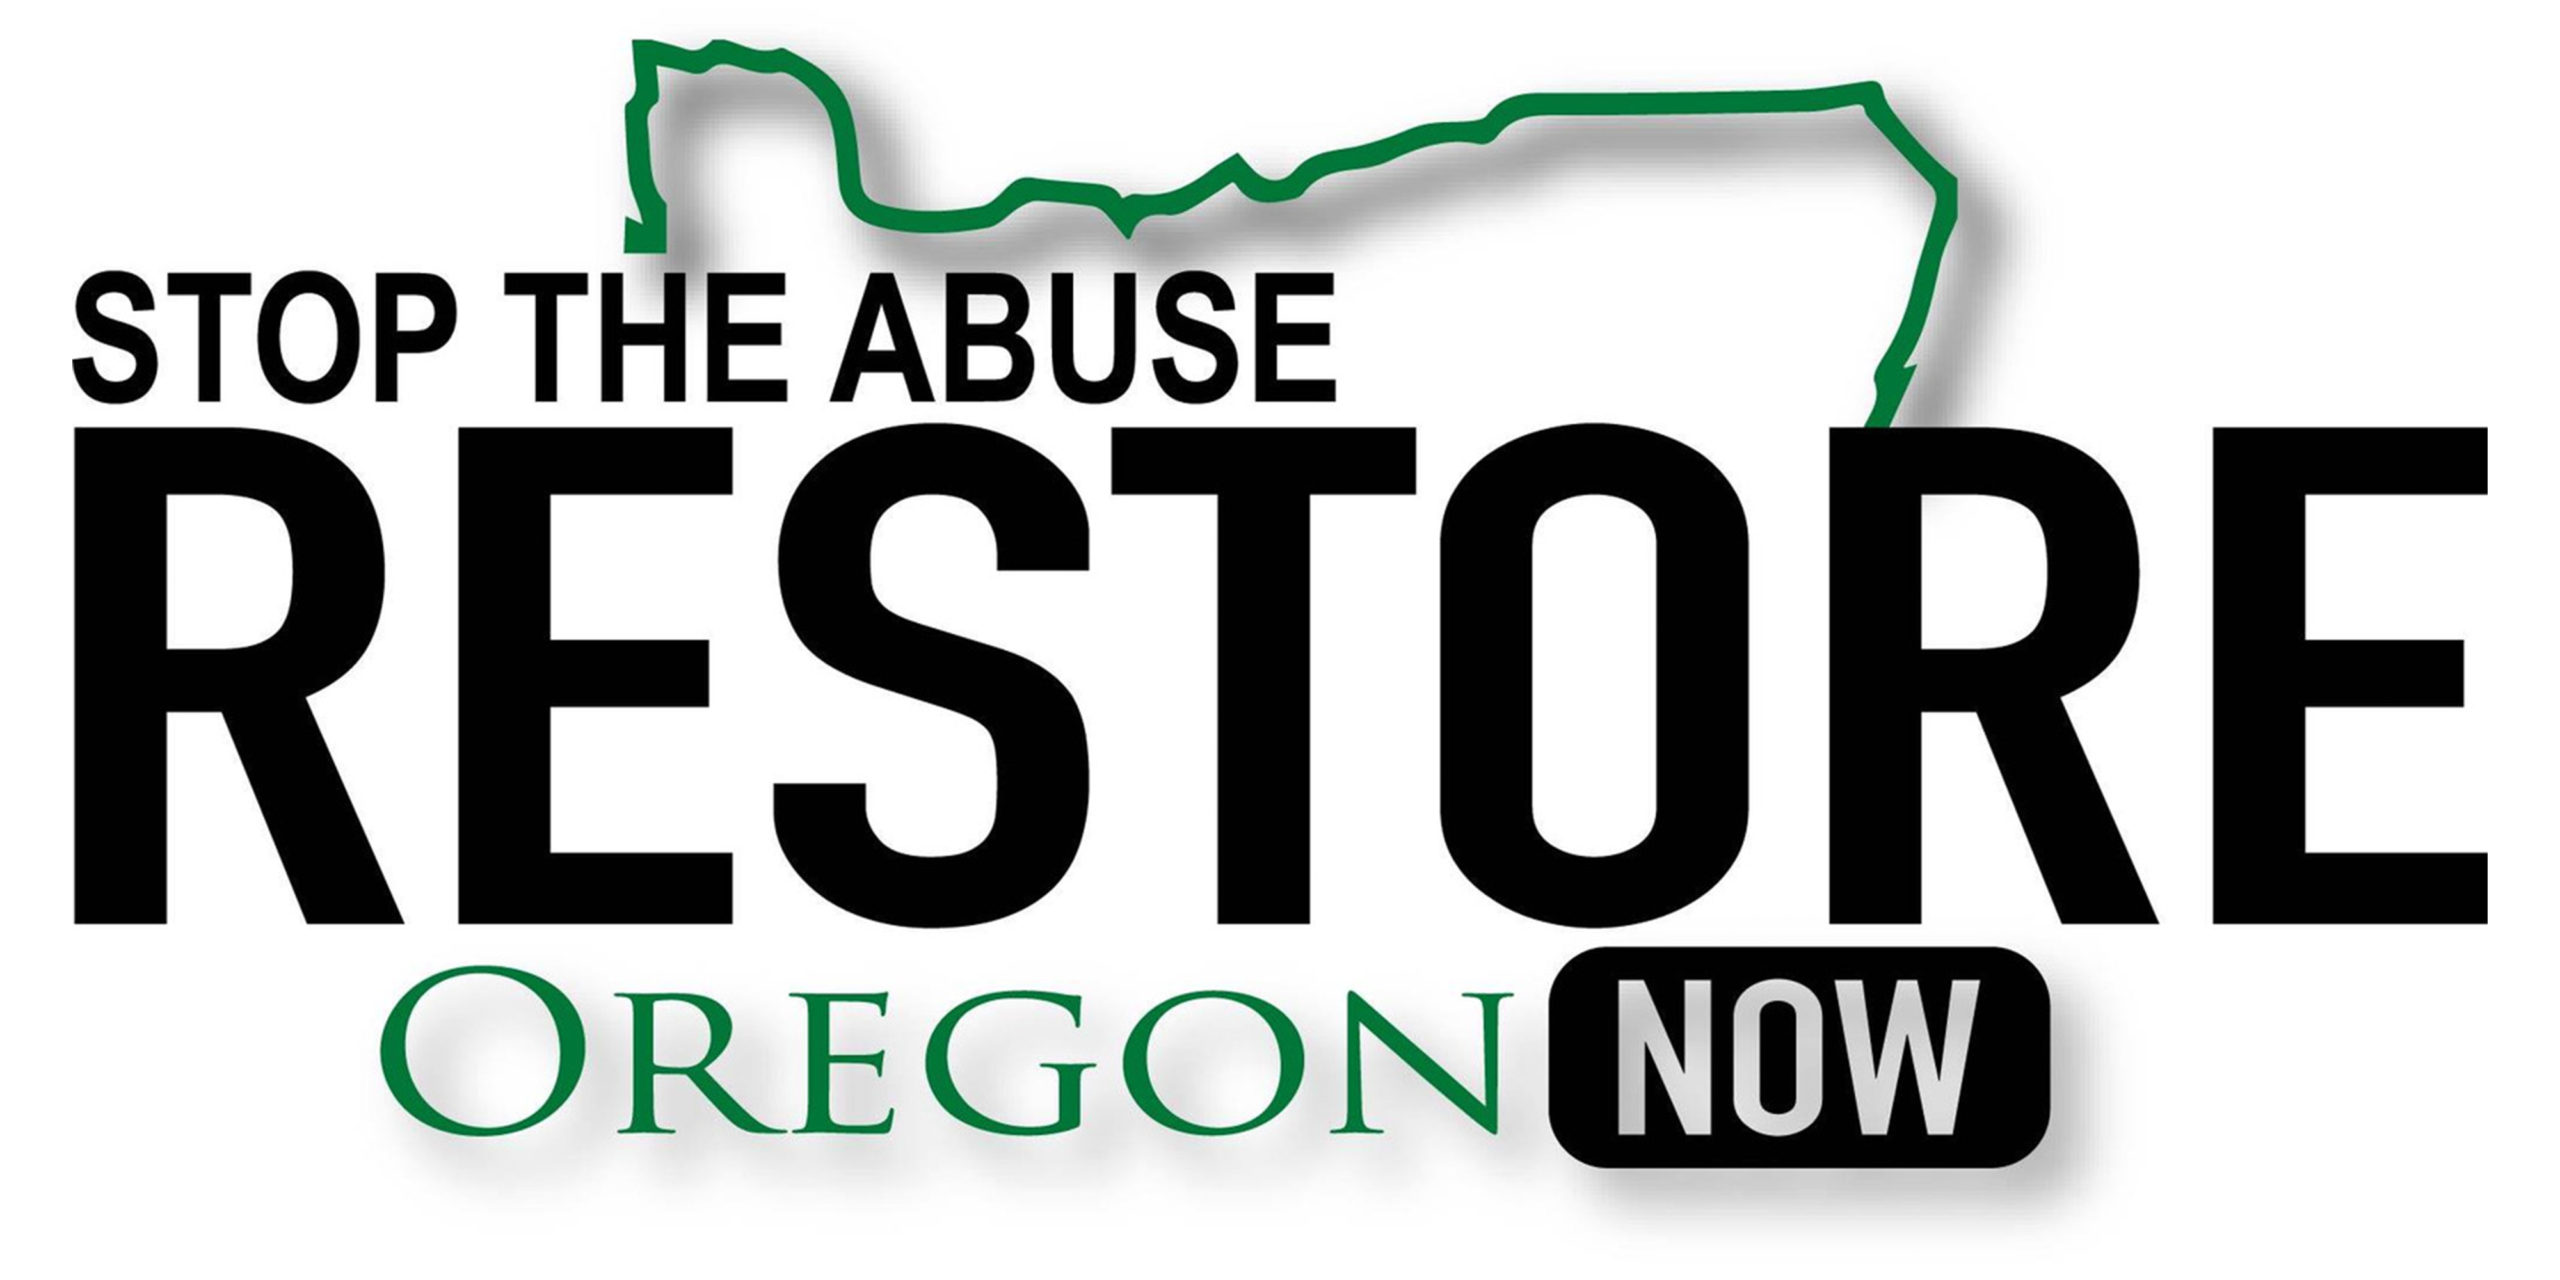 Restore Oregon NOW